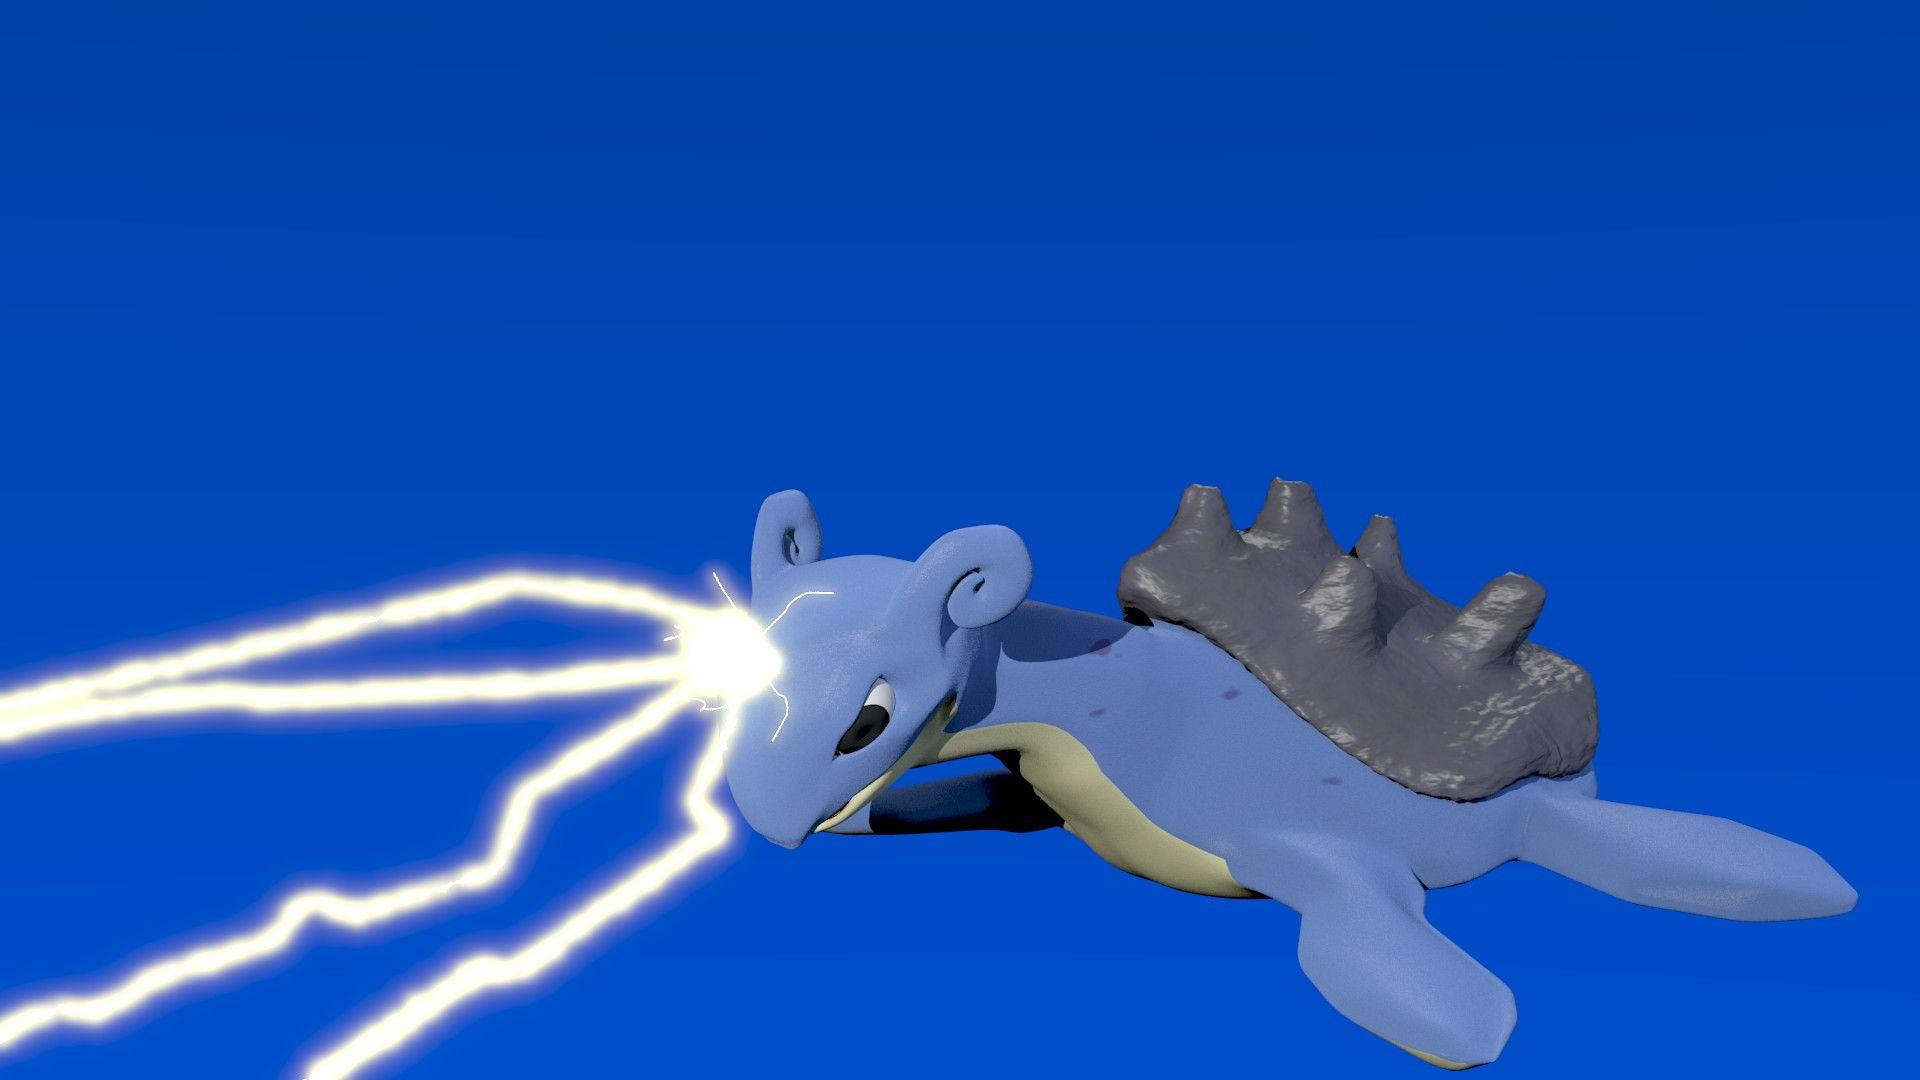 Lapras Used Thunderbolt by alewism